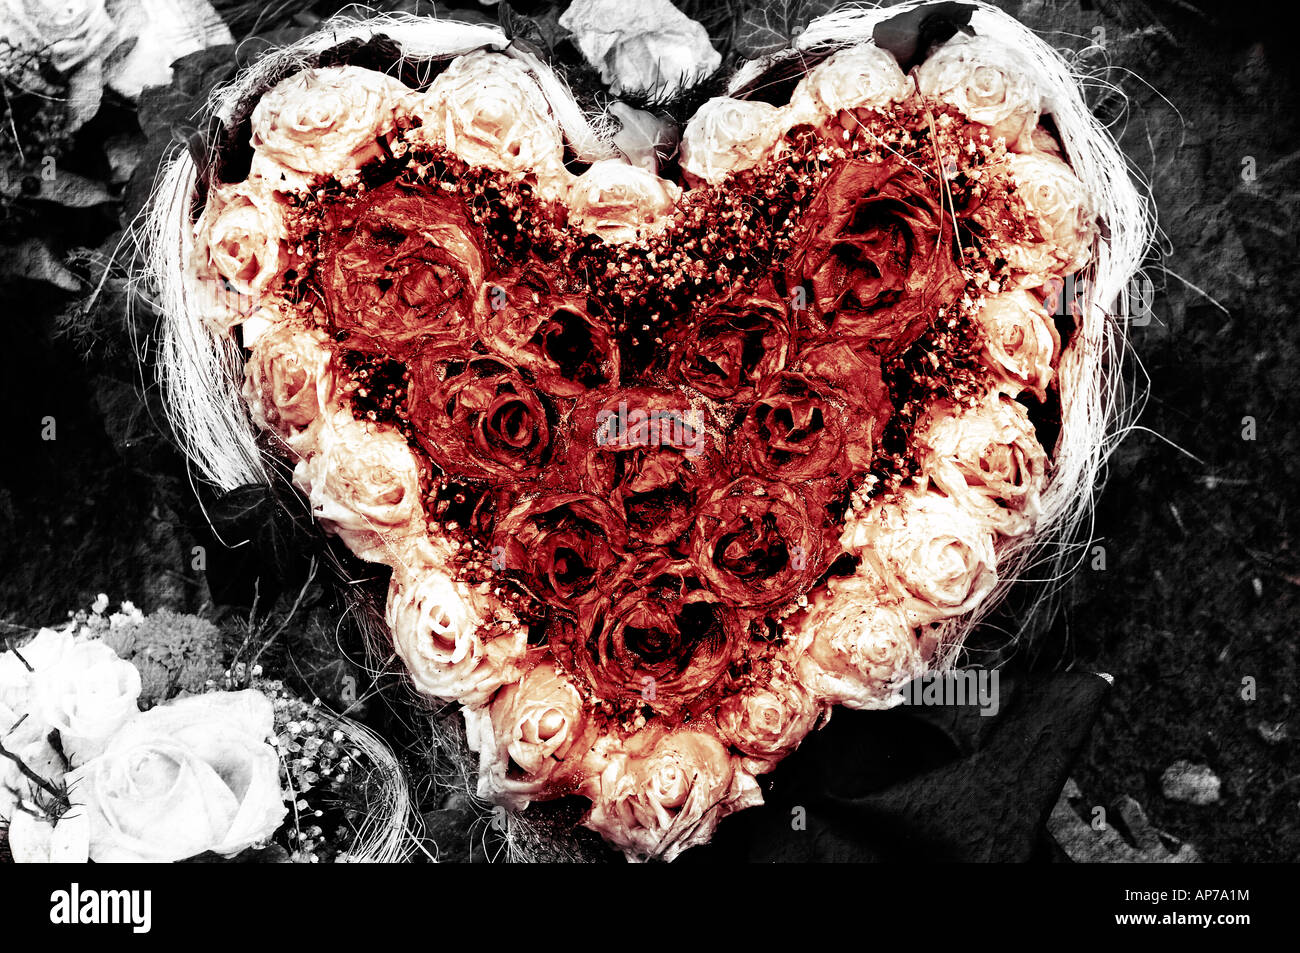 Decay Love Heart Roses Funeral Gothic Symbolic Flowers Romance Sadness Sorrow Loss Death Negative Depression Unrequited